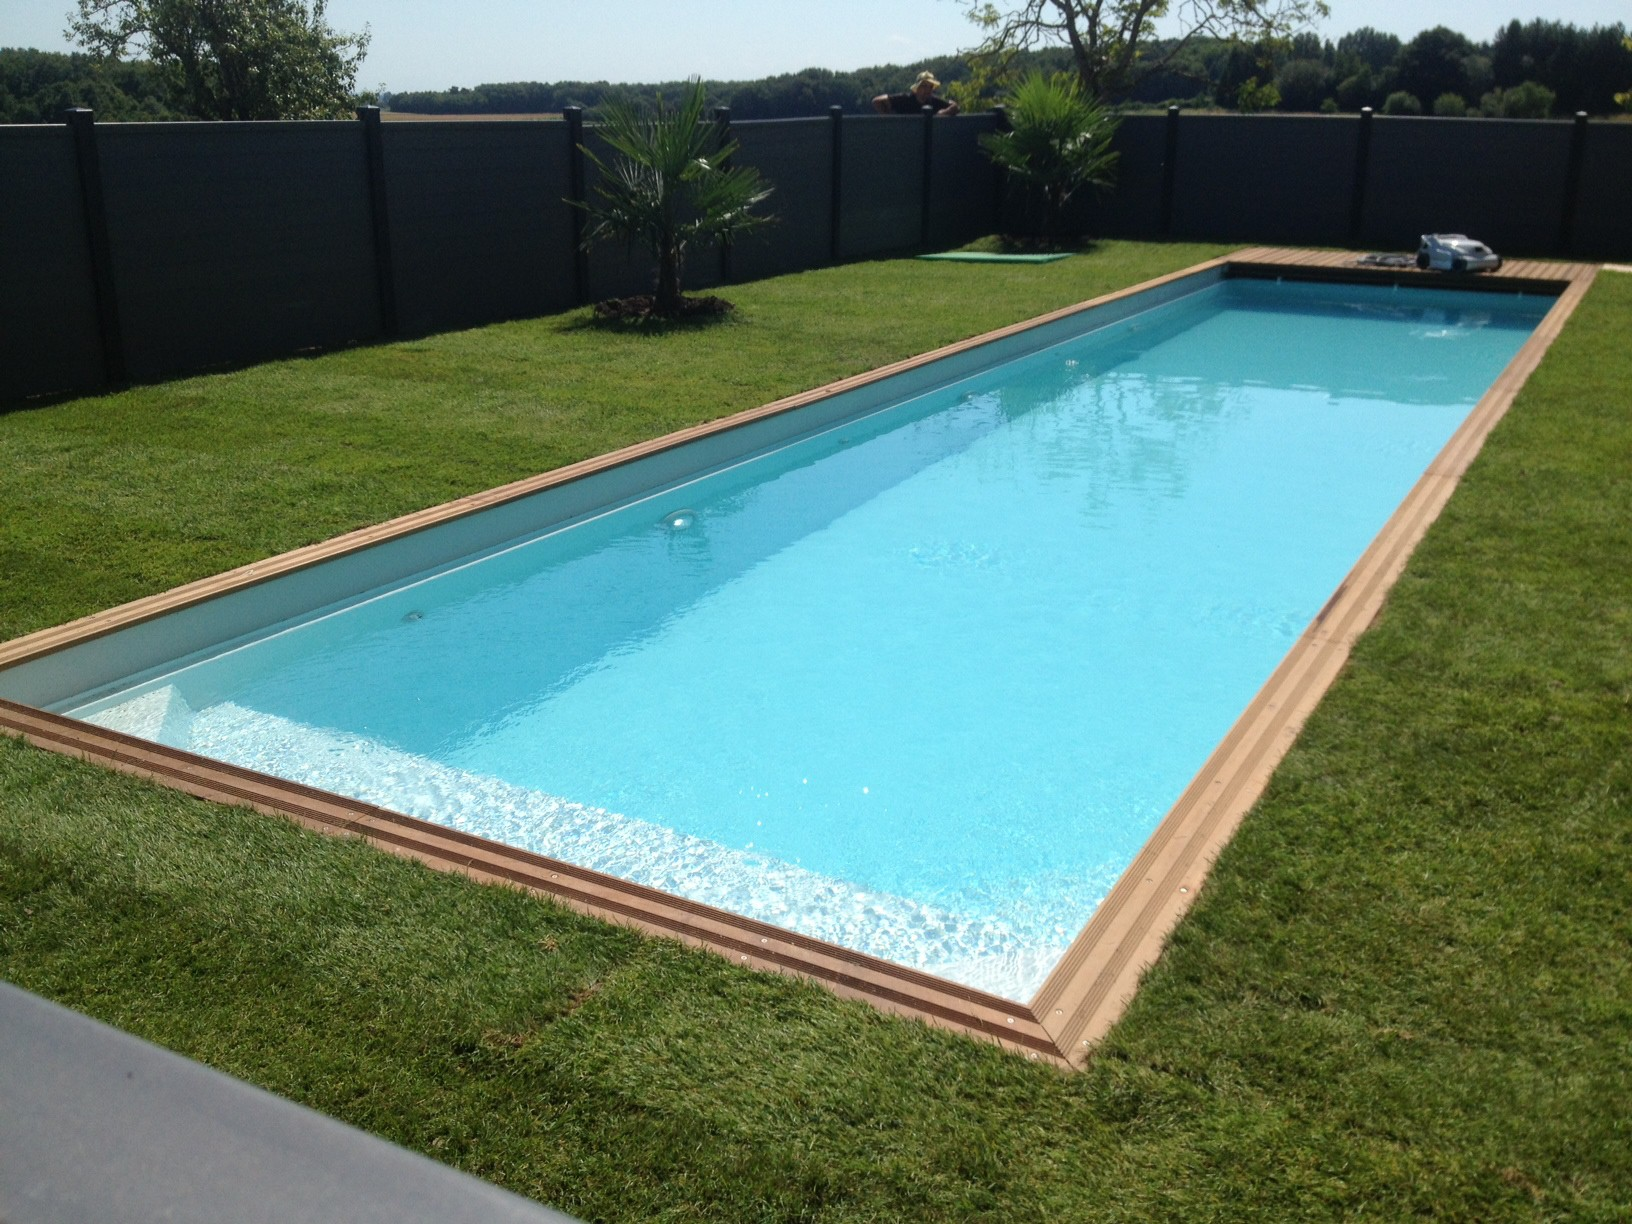 Prix piscine beton 8x4 prix coque piscine 8x4 photos que for Tarif piscine coque